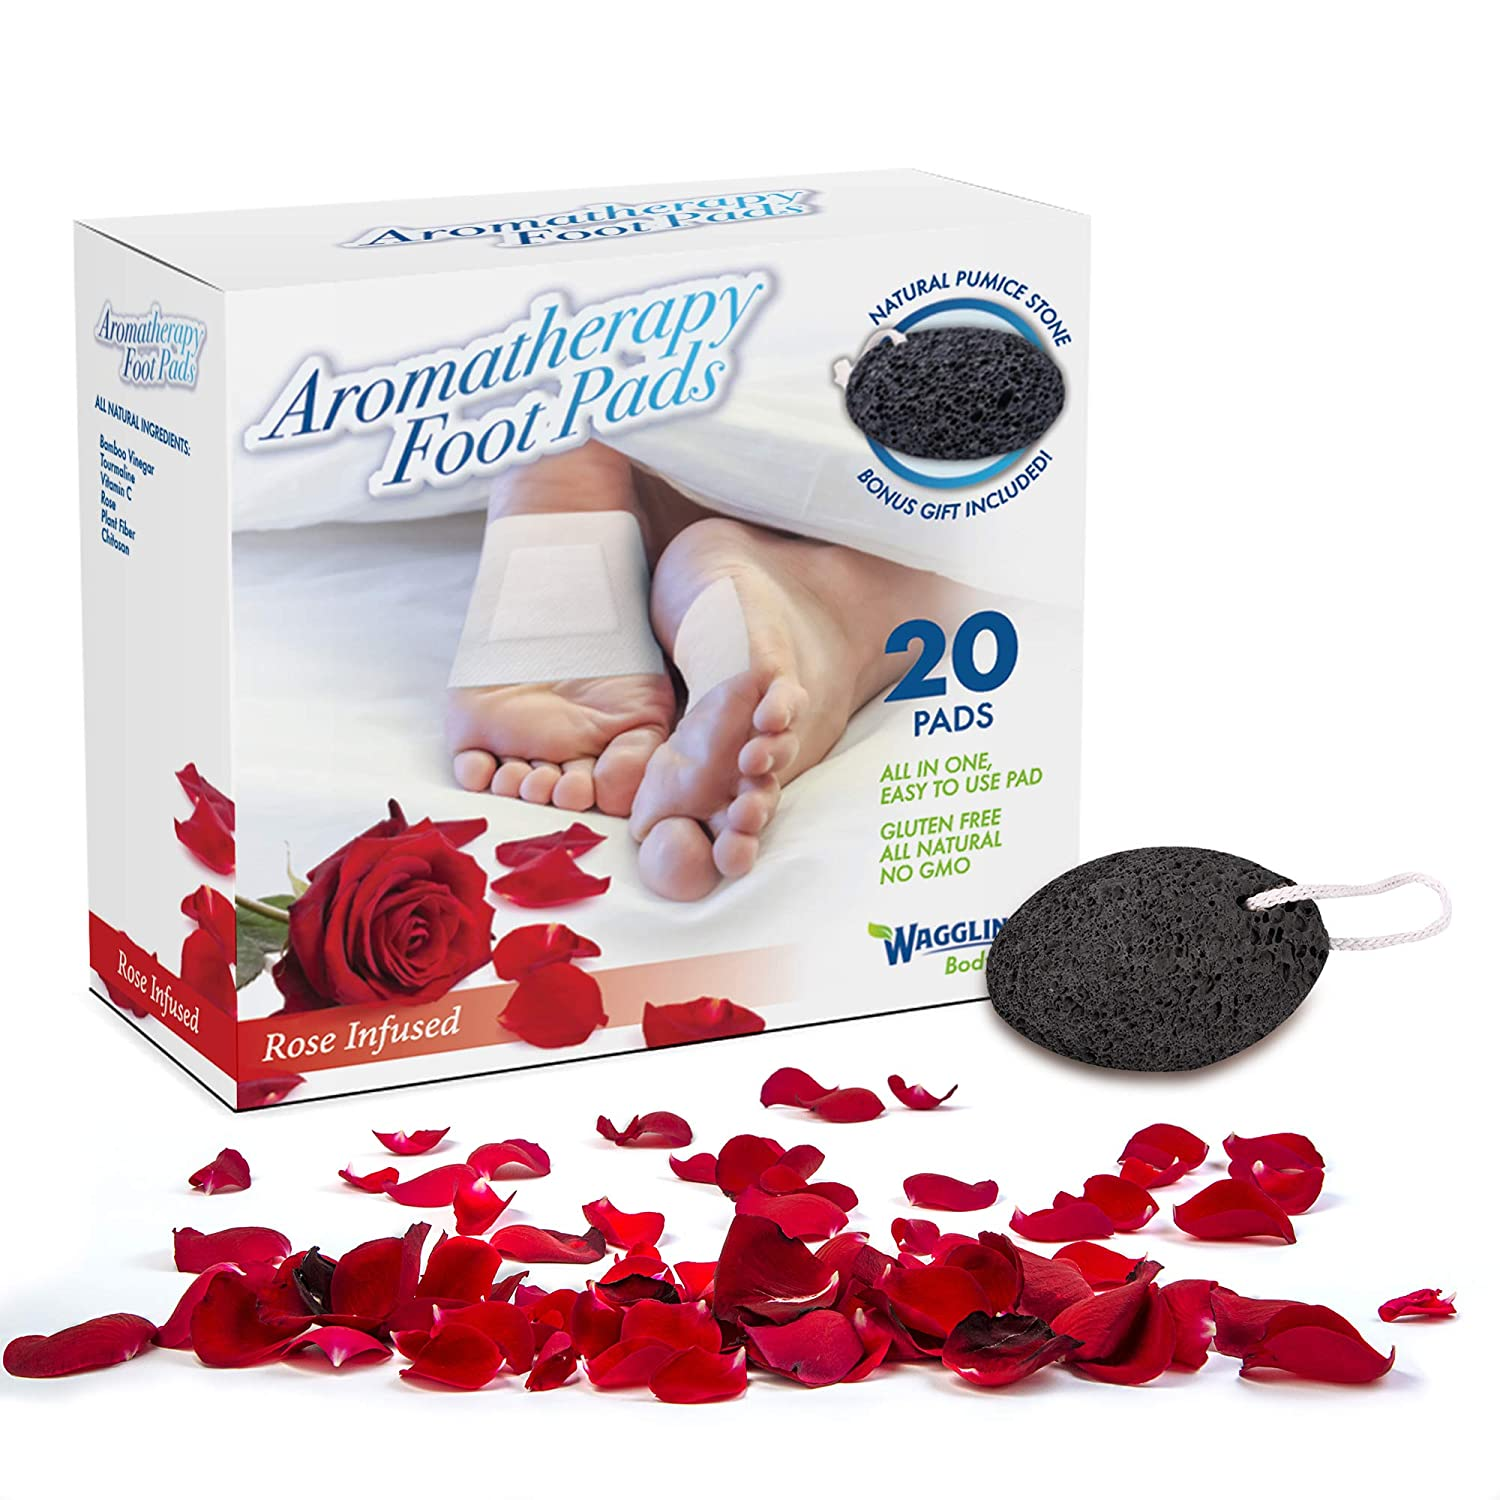 Foot Pads | Cleansing Organic Feet Pads | Natural Foot Care Patches | New Improved FDA Certified Premium All-in-One Rose Patch | Includes Bonus Foot Care Pumice Stone